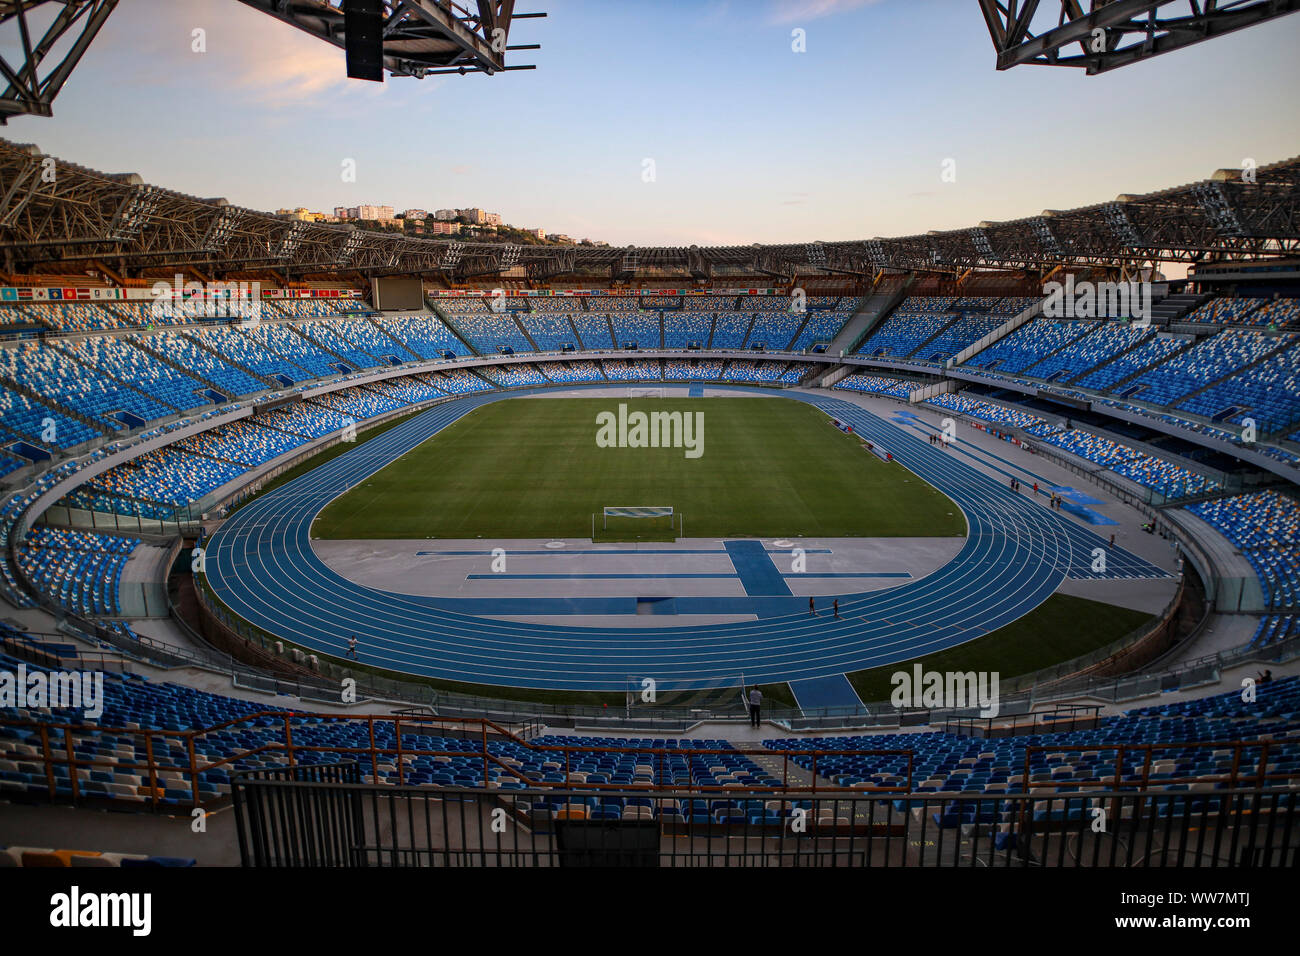 13th September 2019, San Paolo Stadium Fuorigrotta, Naples, Italy; The San  Paolo Stadium is opened to the public for the first time after major  renovations to the stadium - Editorial Use Only